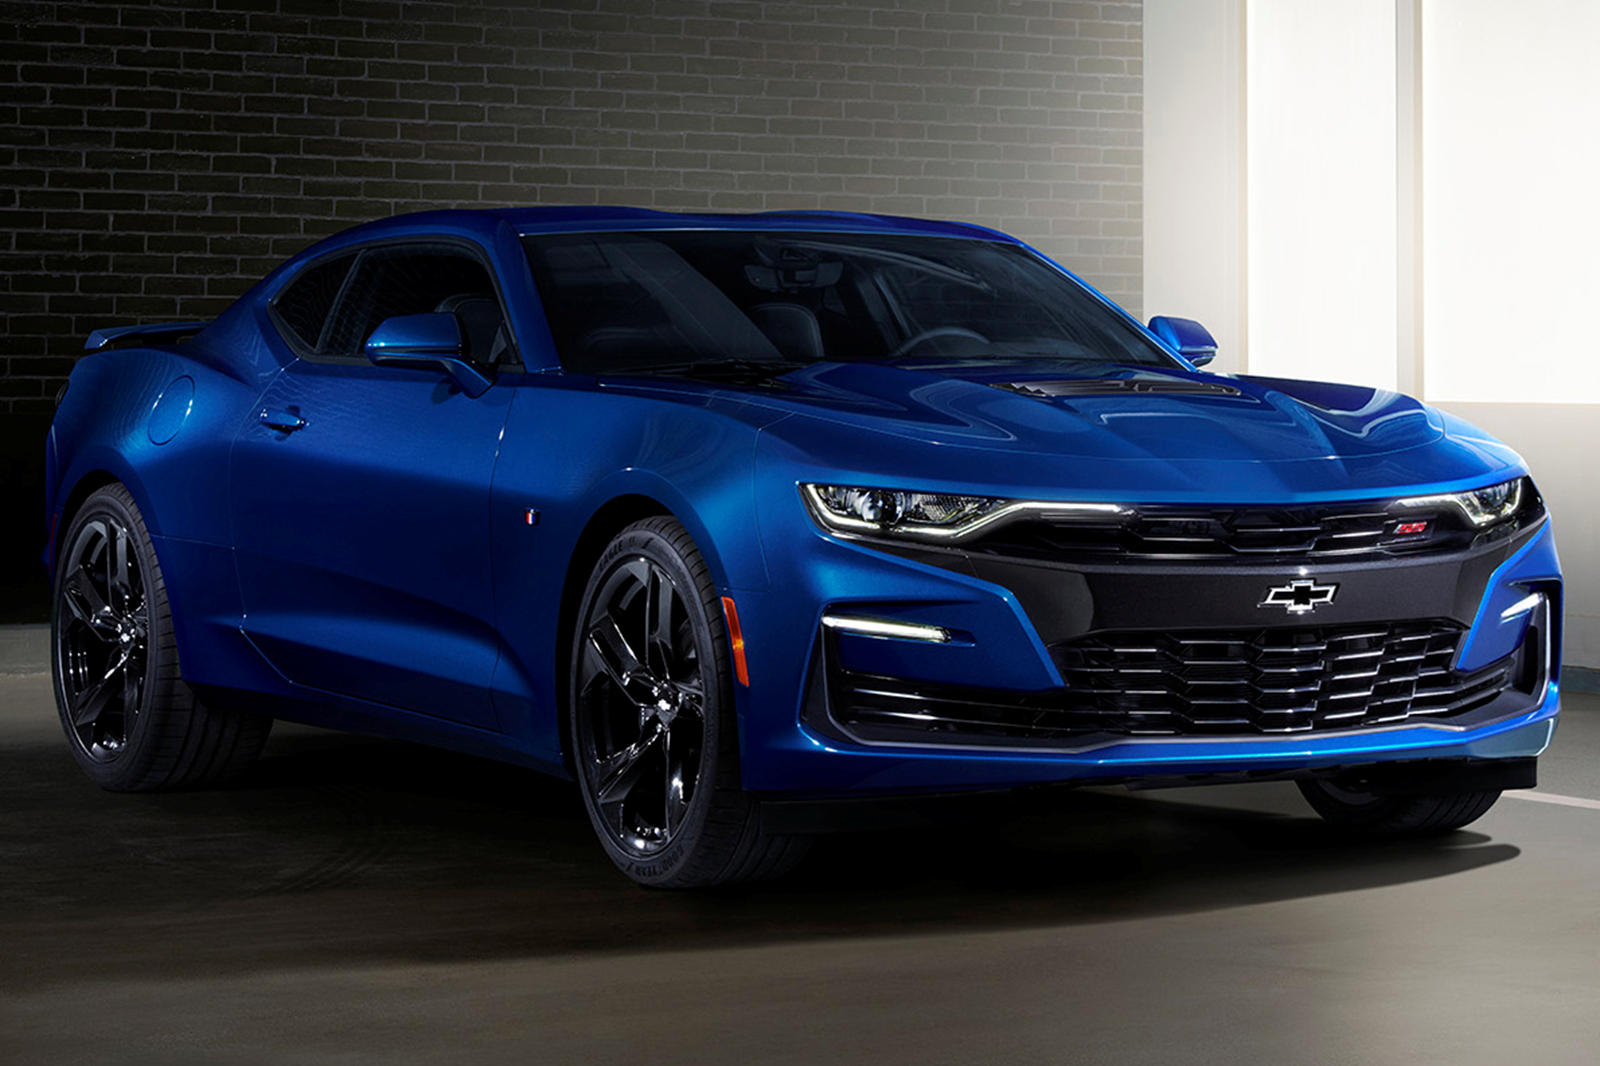 2020 Chevrolet Camaro Coupe Review Trims Specs Price New Interior Features Exterior Design And Specifications Carbuzz